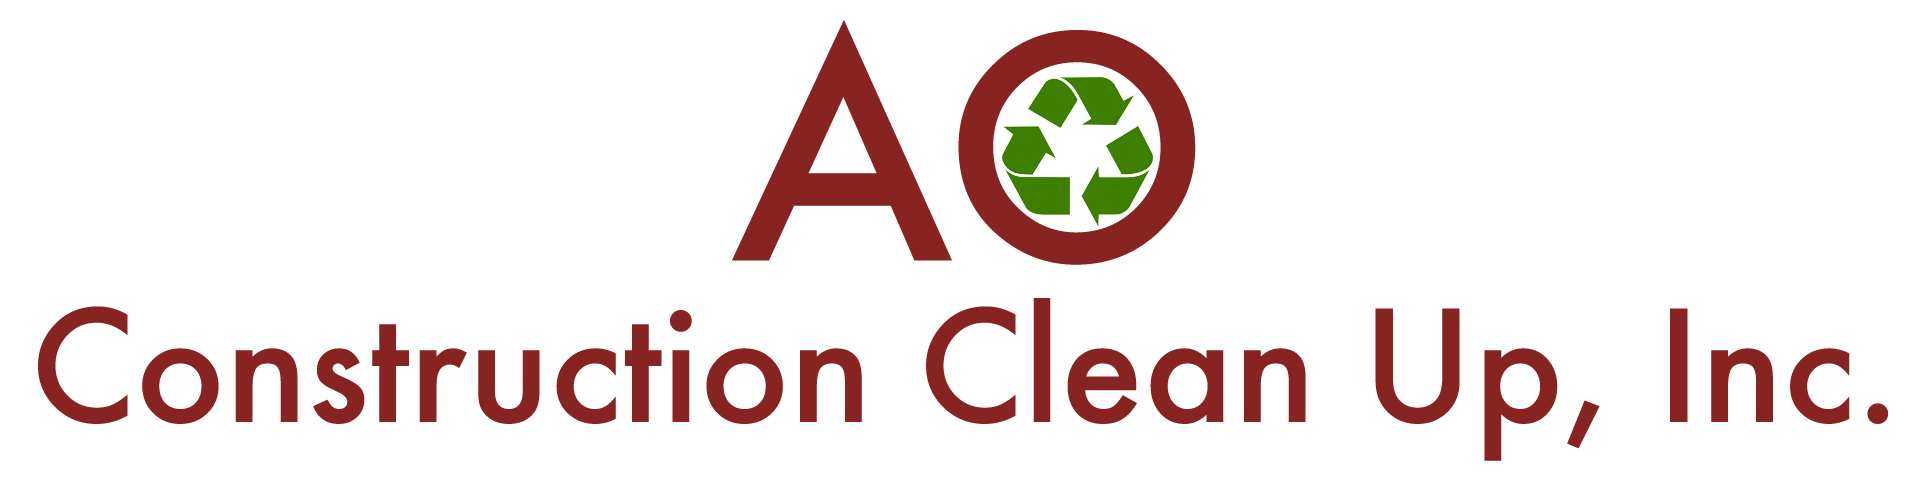 AO Junk Removal and Dumpster Rental